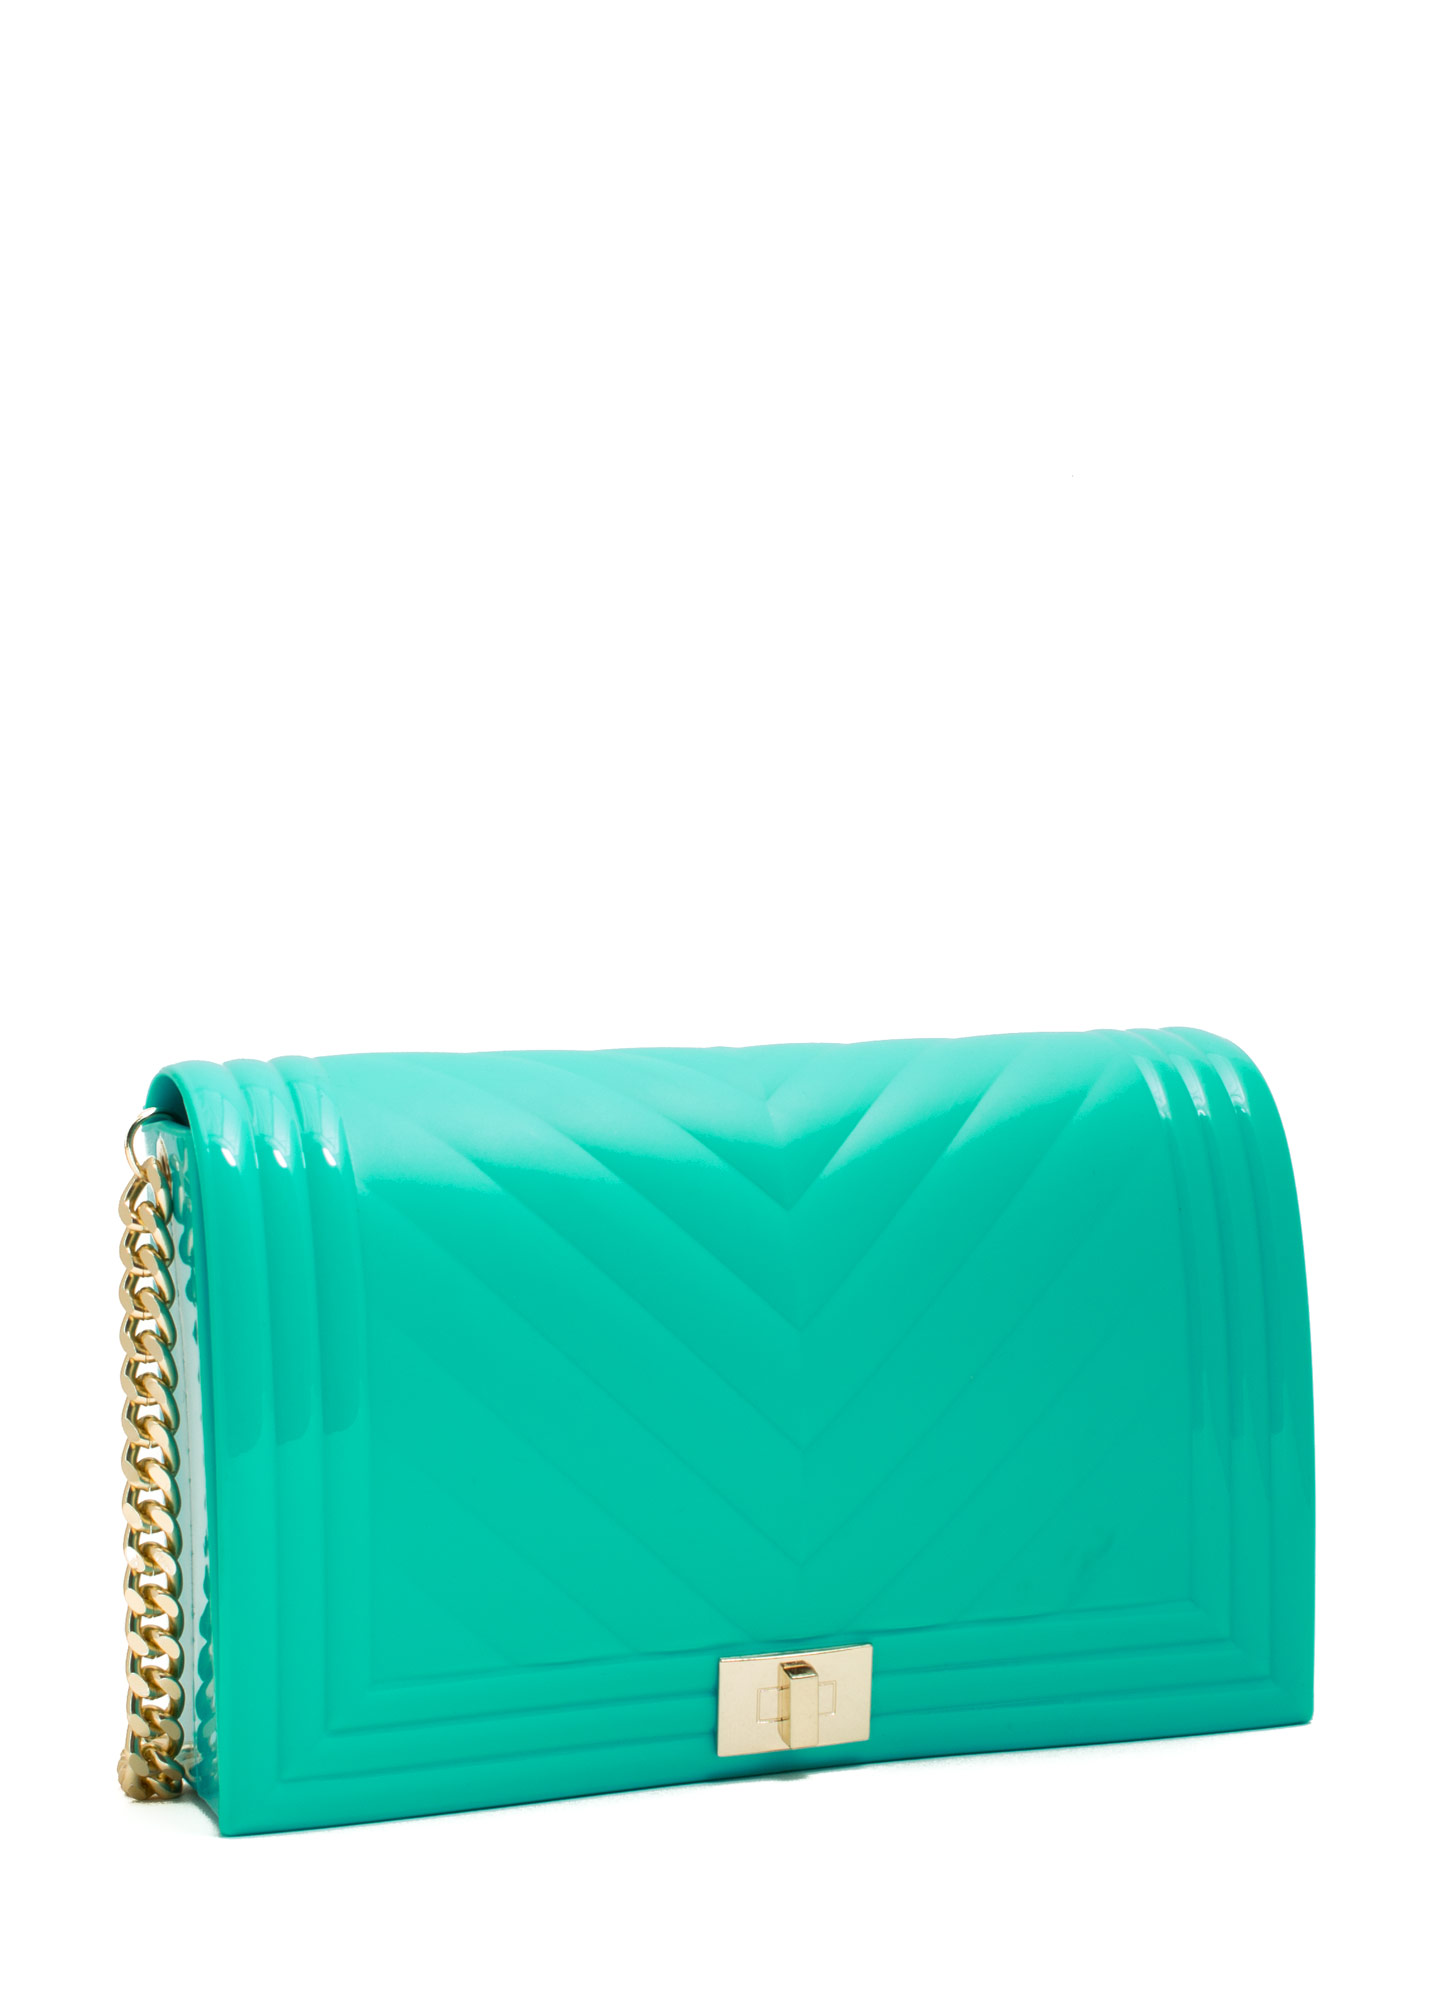 Chain Link Jelly Purse MINT